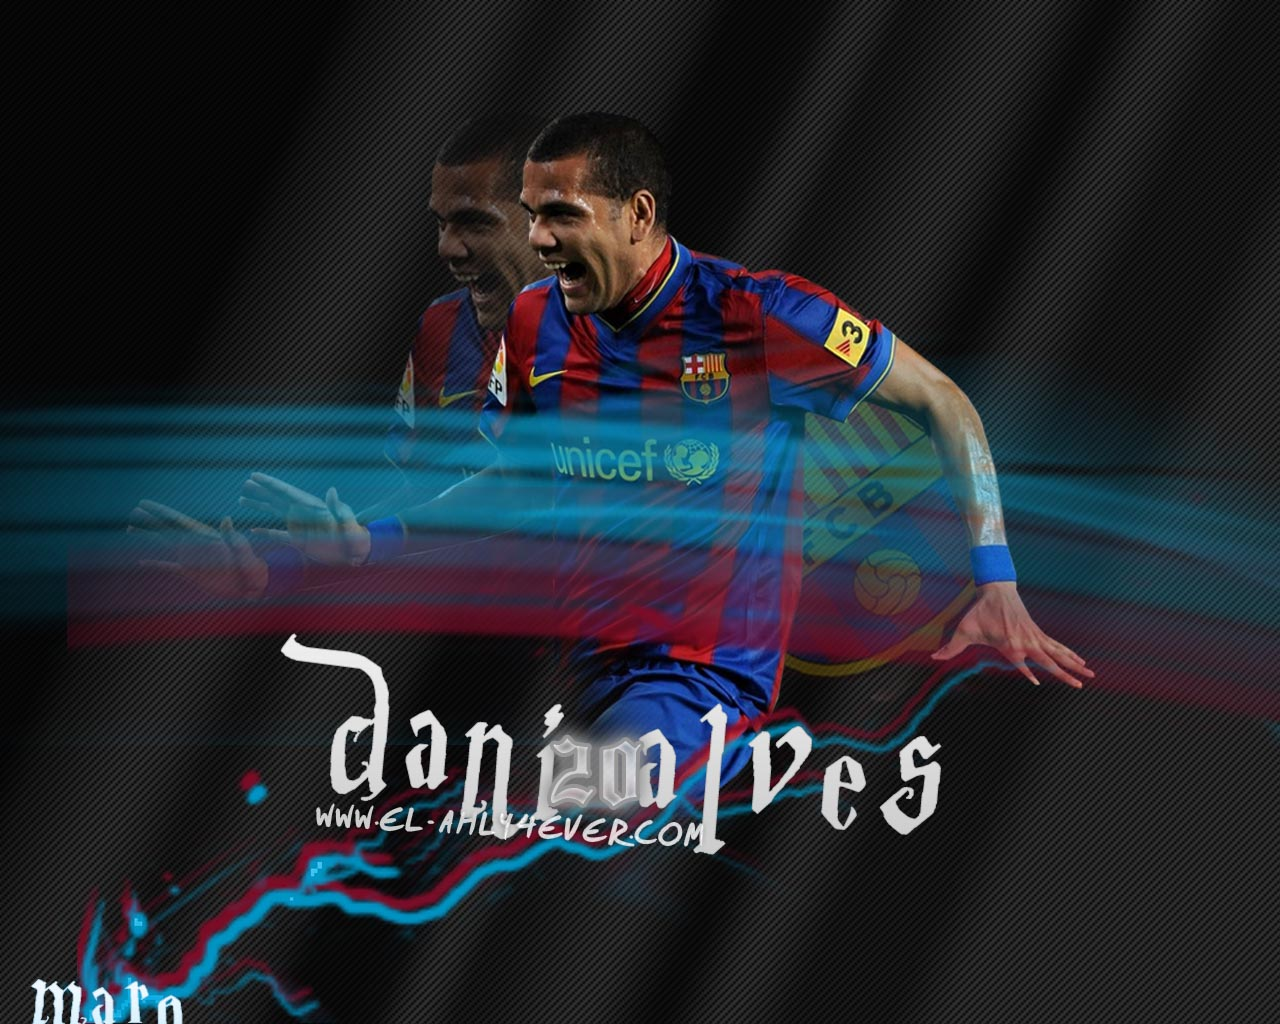 Wallpaper Free Picture Daniel Alves Wallpaper 2011 picture wallpaper image